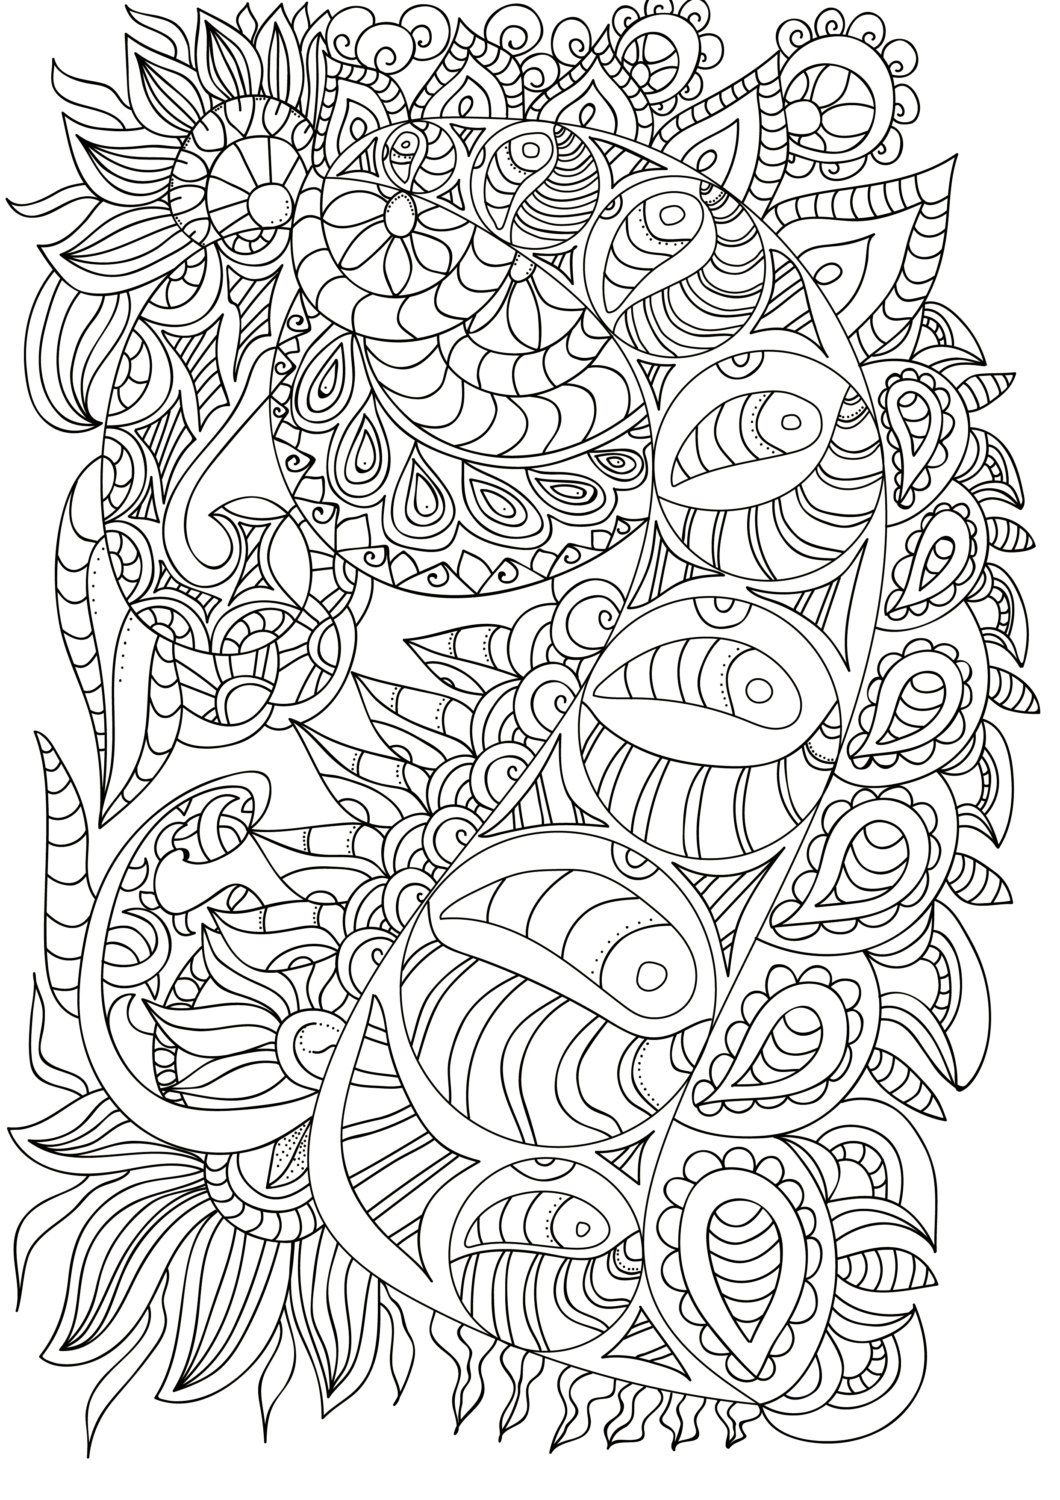 Coloring Pages for Adult, Adult Coloring Pages, Adult Coloring Book ...